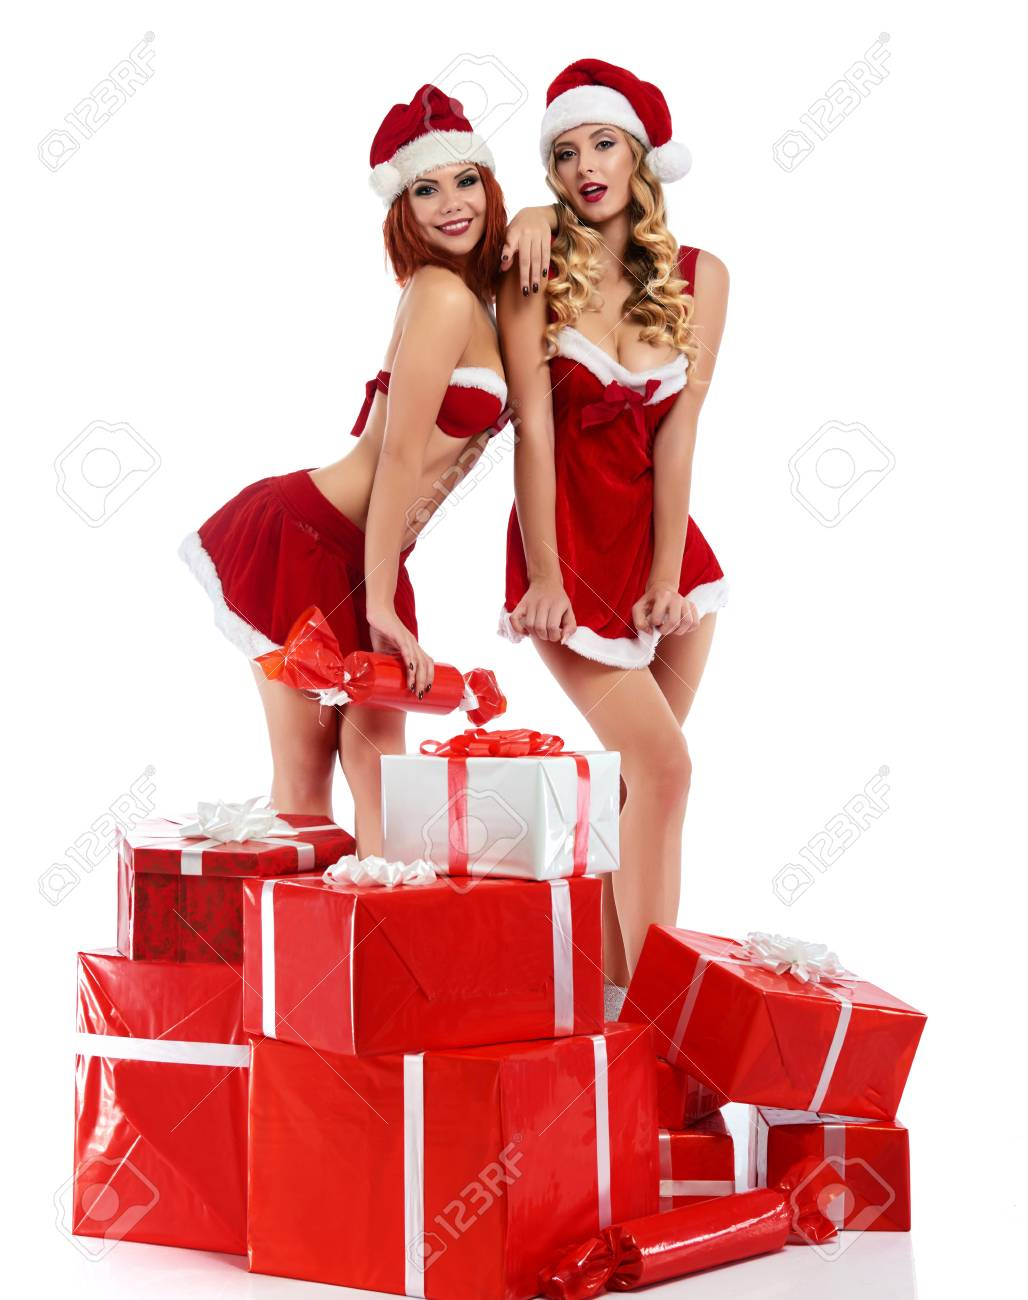 Stock Photo - Two sexy Christmas girls posing with a pile of presents